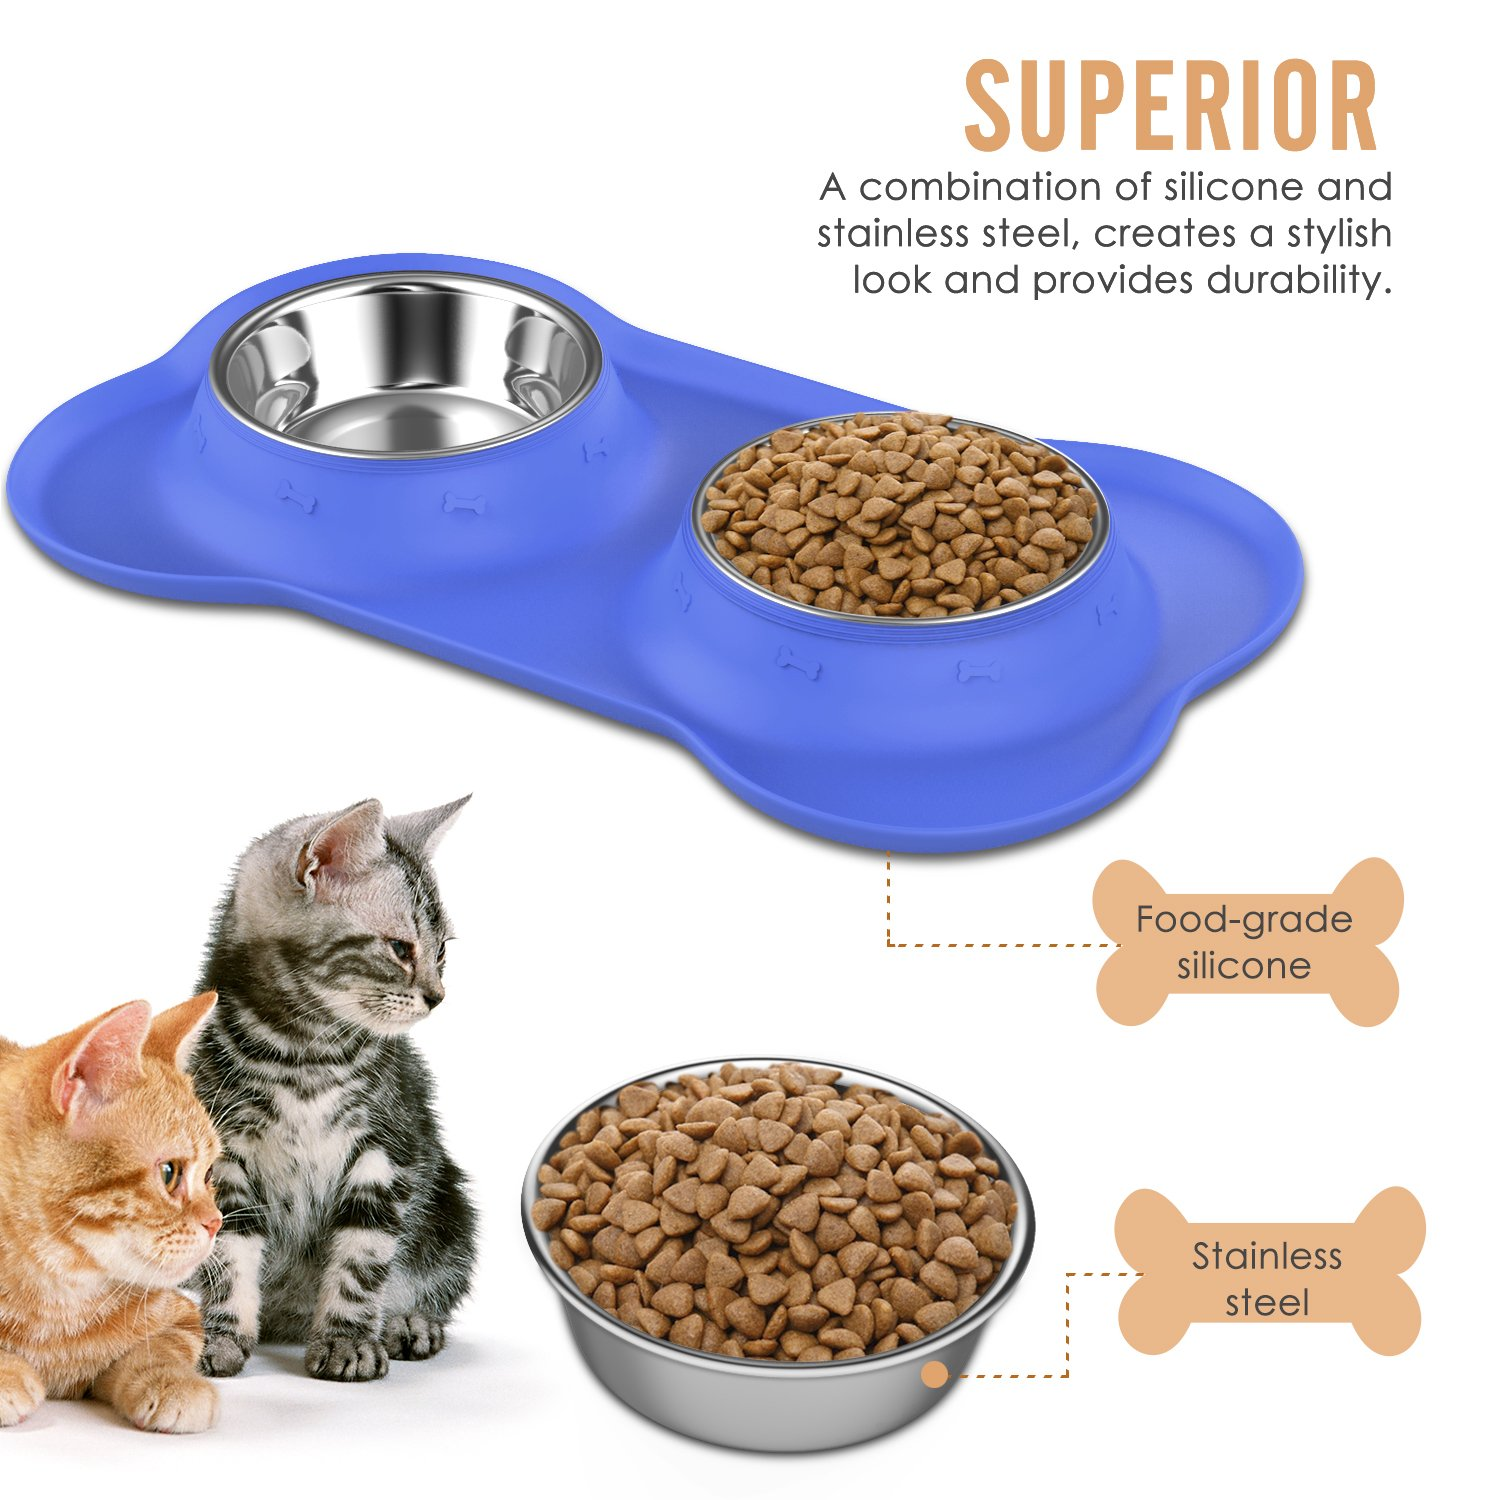 Pawaboo Pet Dog Cat Bowls, Premium Stainless Steel Pet Feeder with Food Grade Bone Shaped Rubber Base, 4.33 Inch Diameter Bowls for Pet Dog Cat Food or Water, Set of 2, Small Size, BLUE by PAWABOO (Image #2)